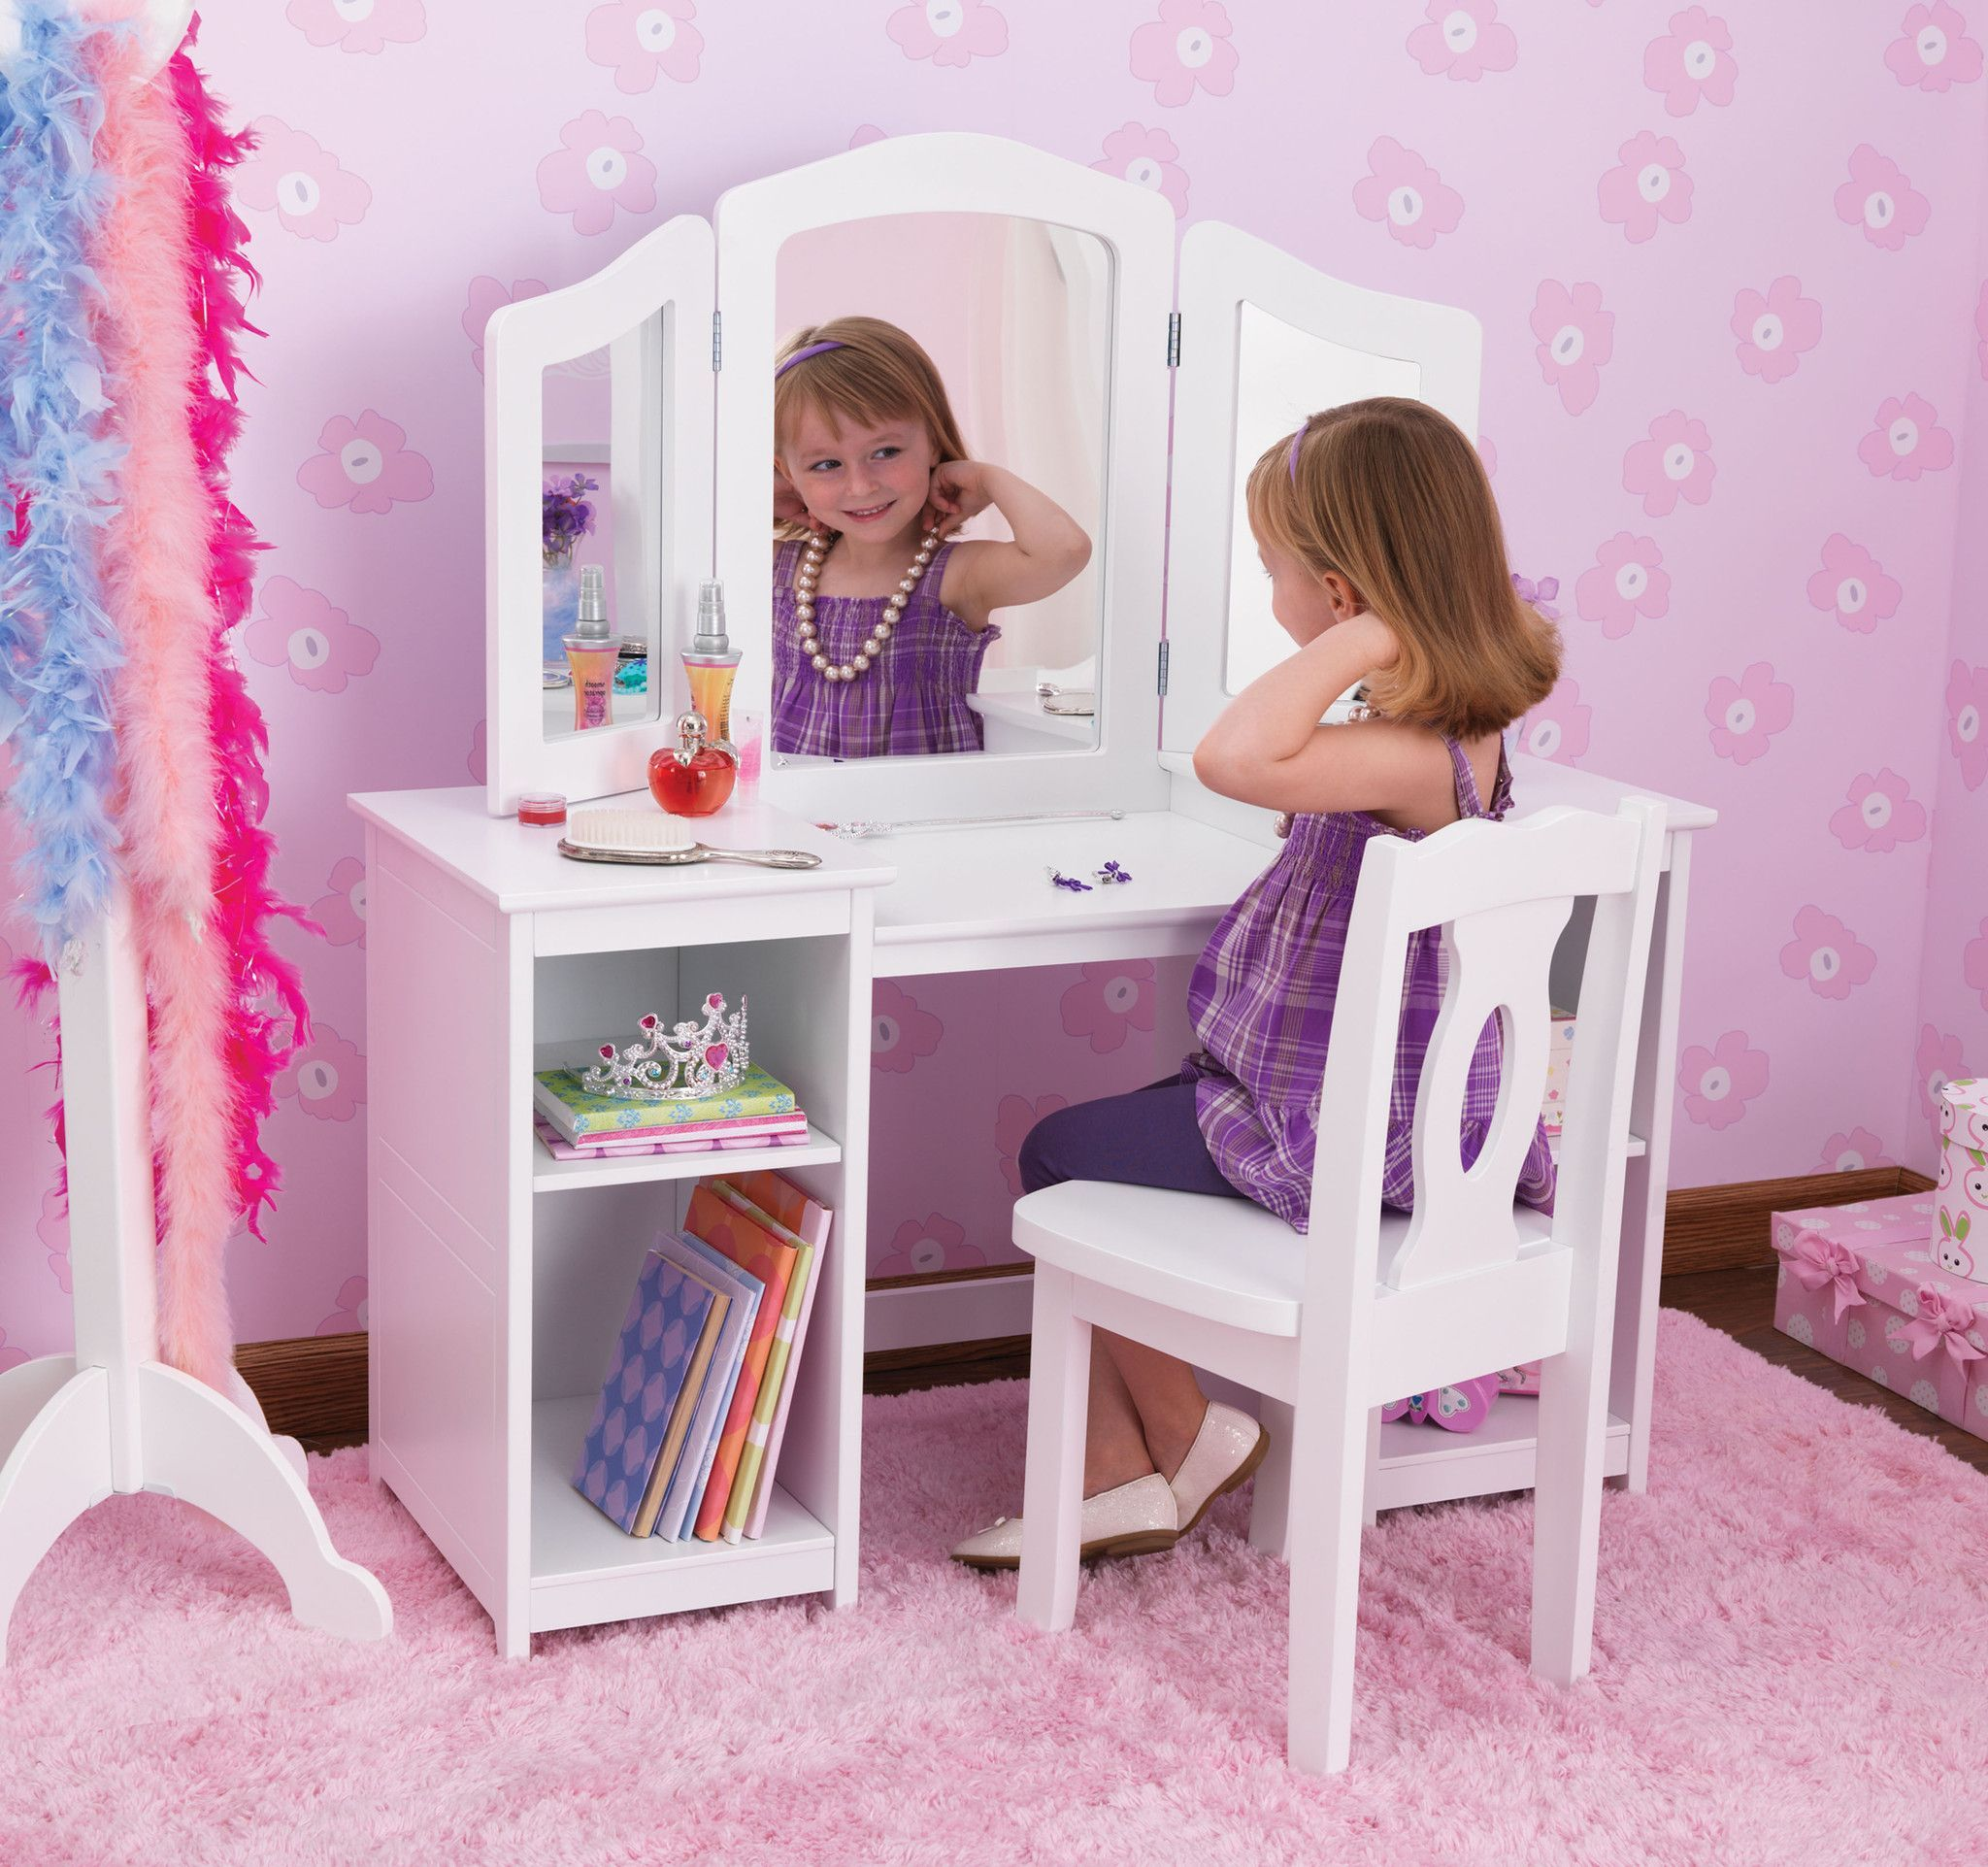 Every young girl needs her very own vanity Our Deluxe Vanity